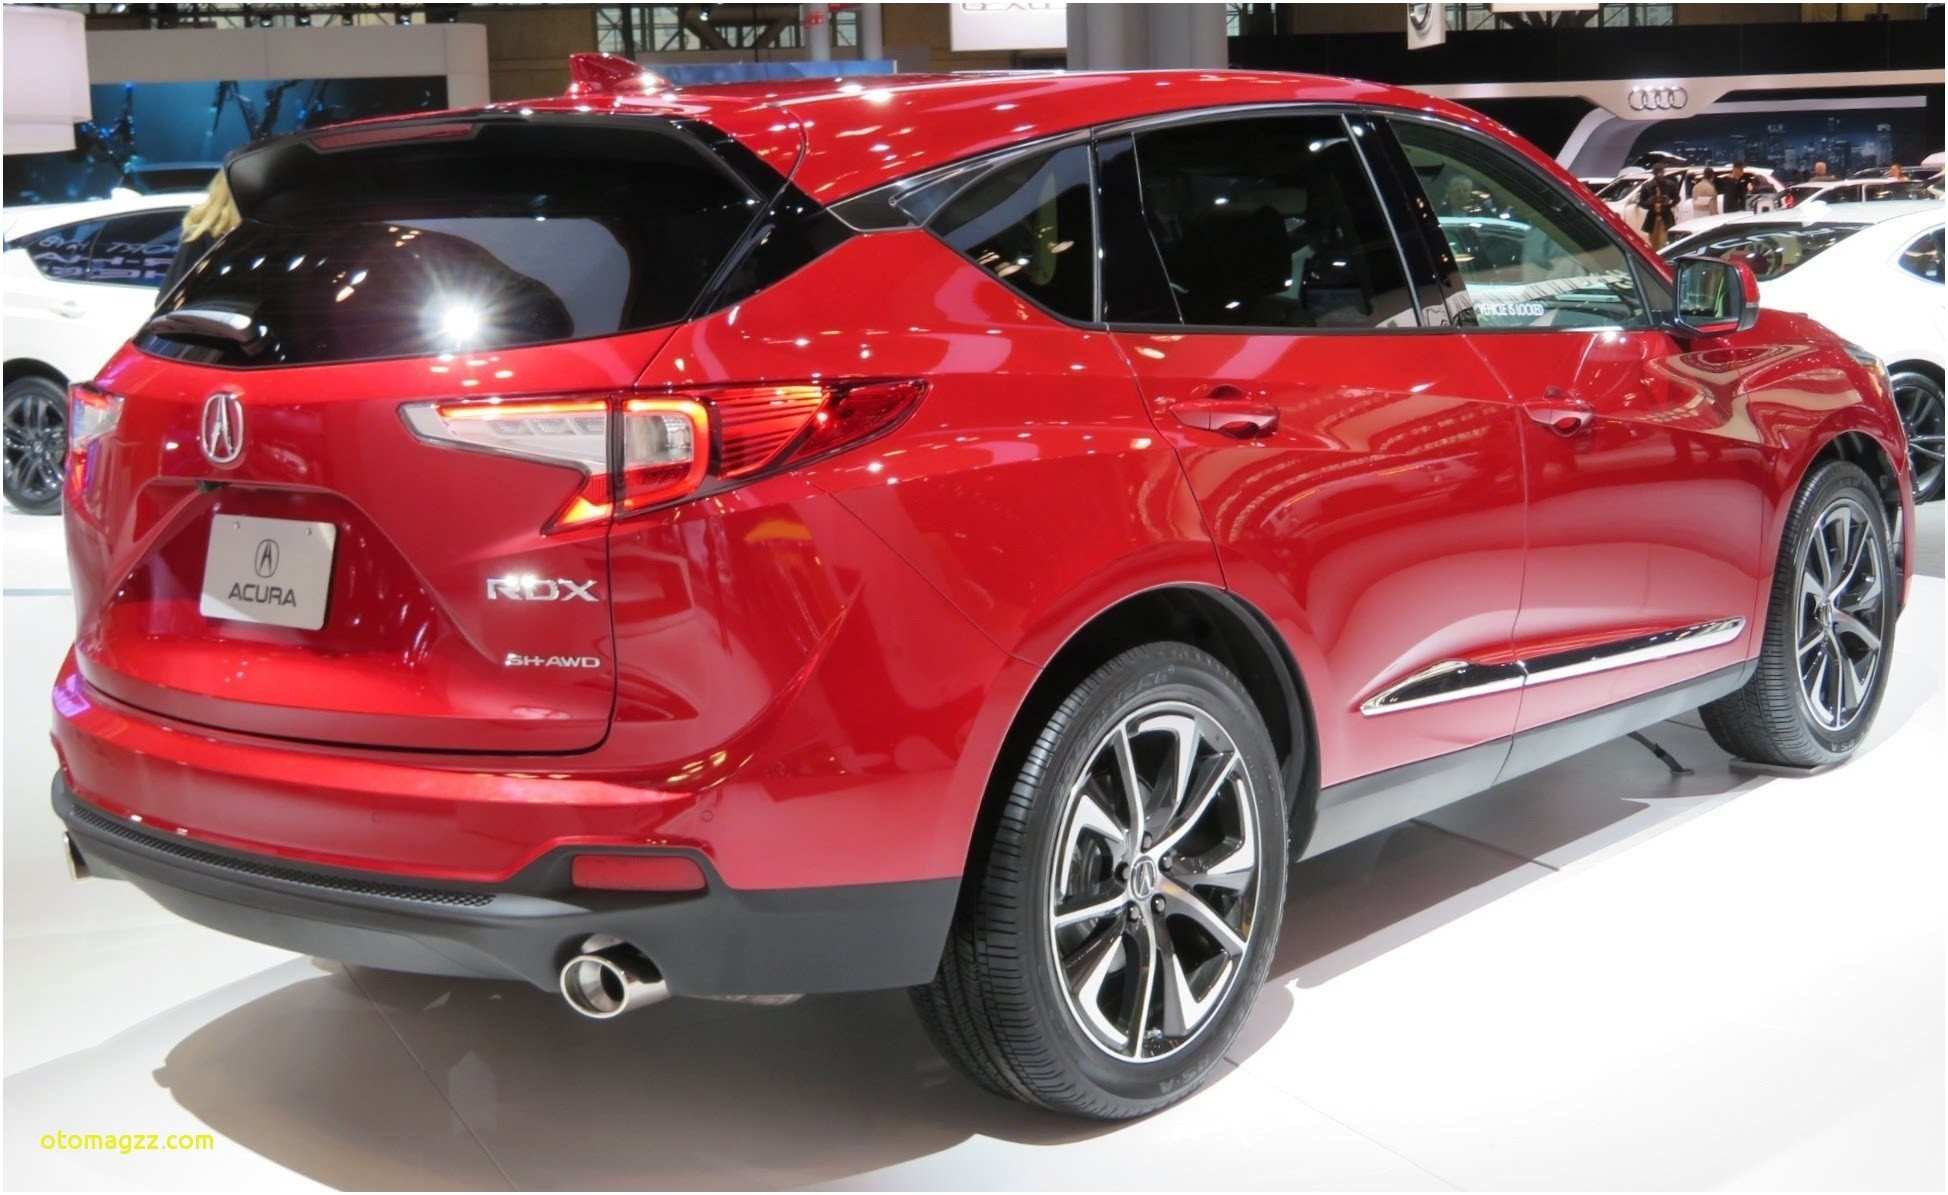 88 Gallery of New Acura 2019 Lease Exterior Release Date by New Acura 2019 Lease Exterior